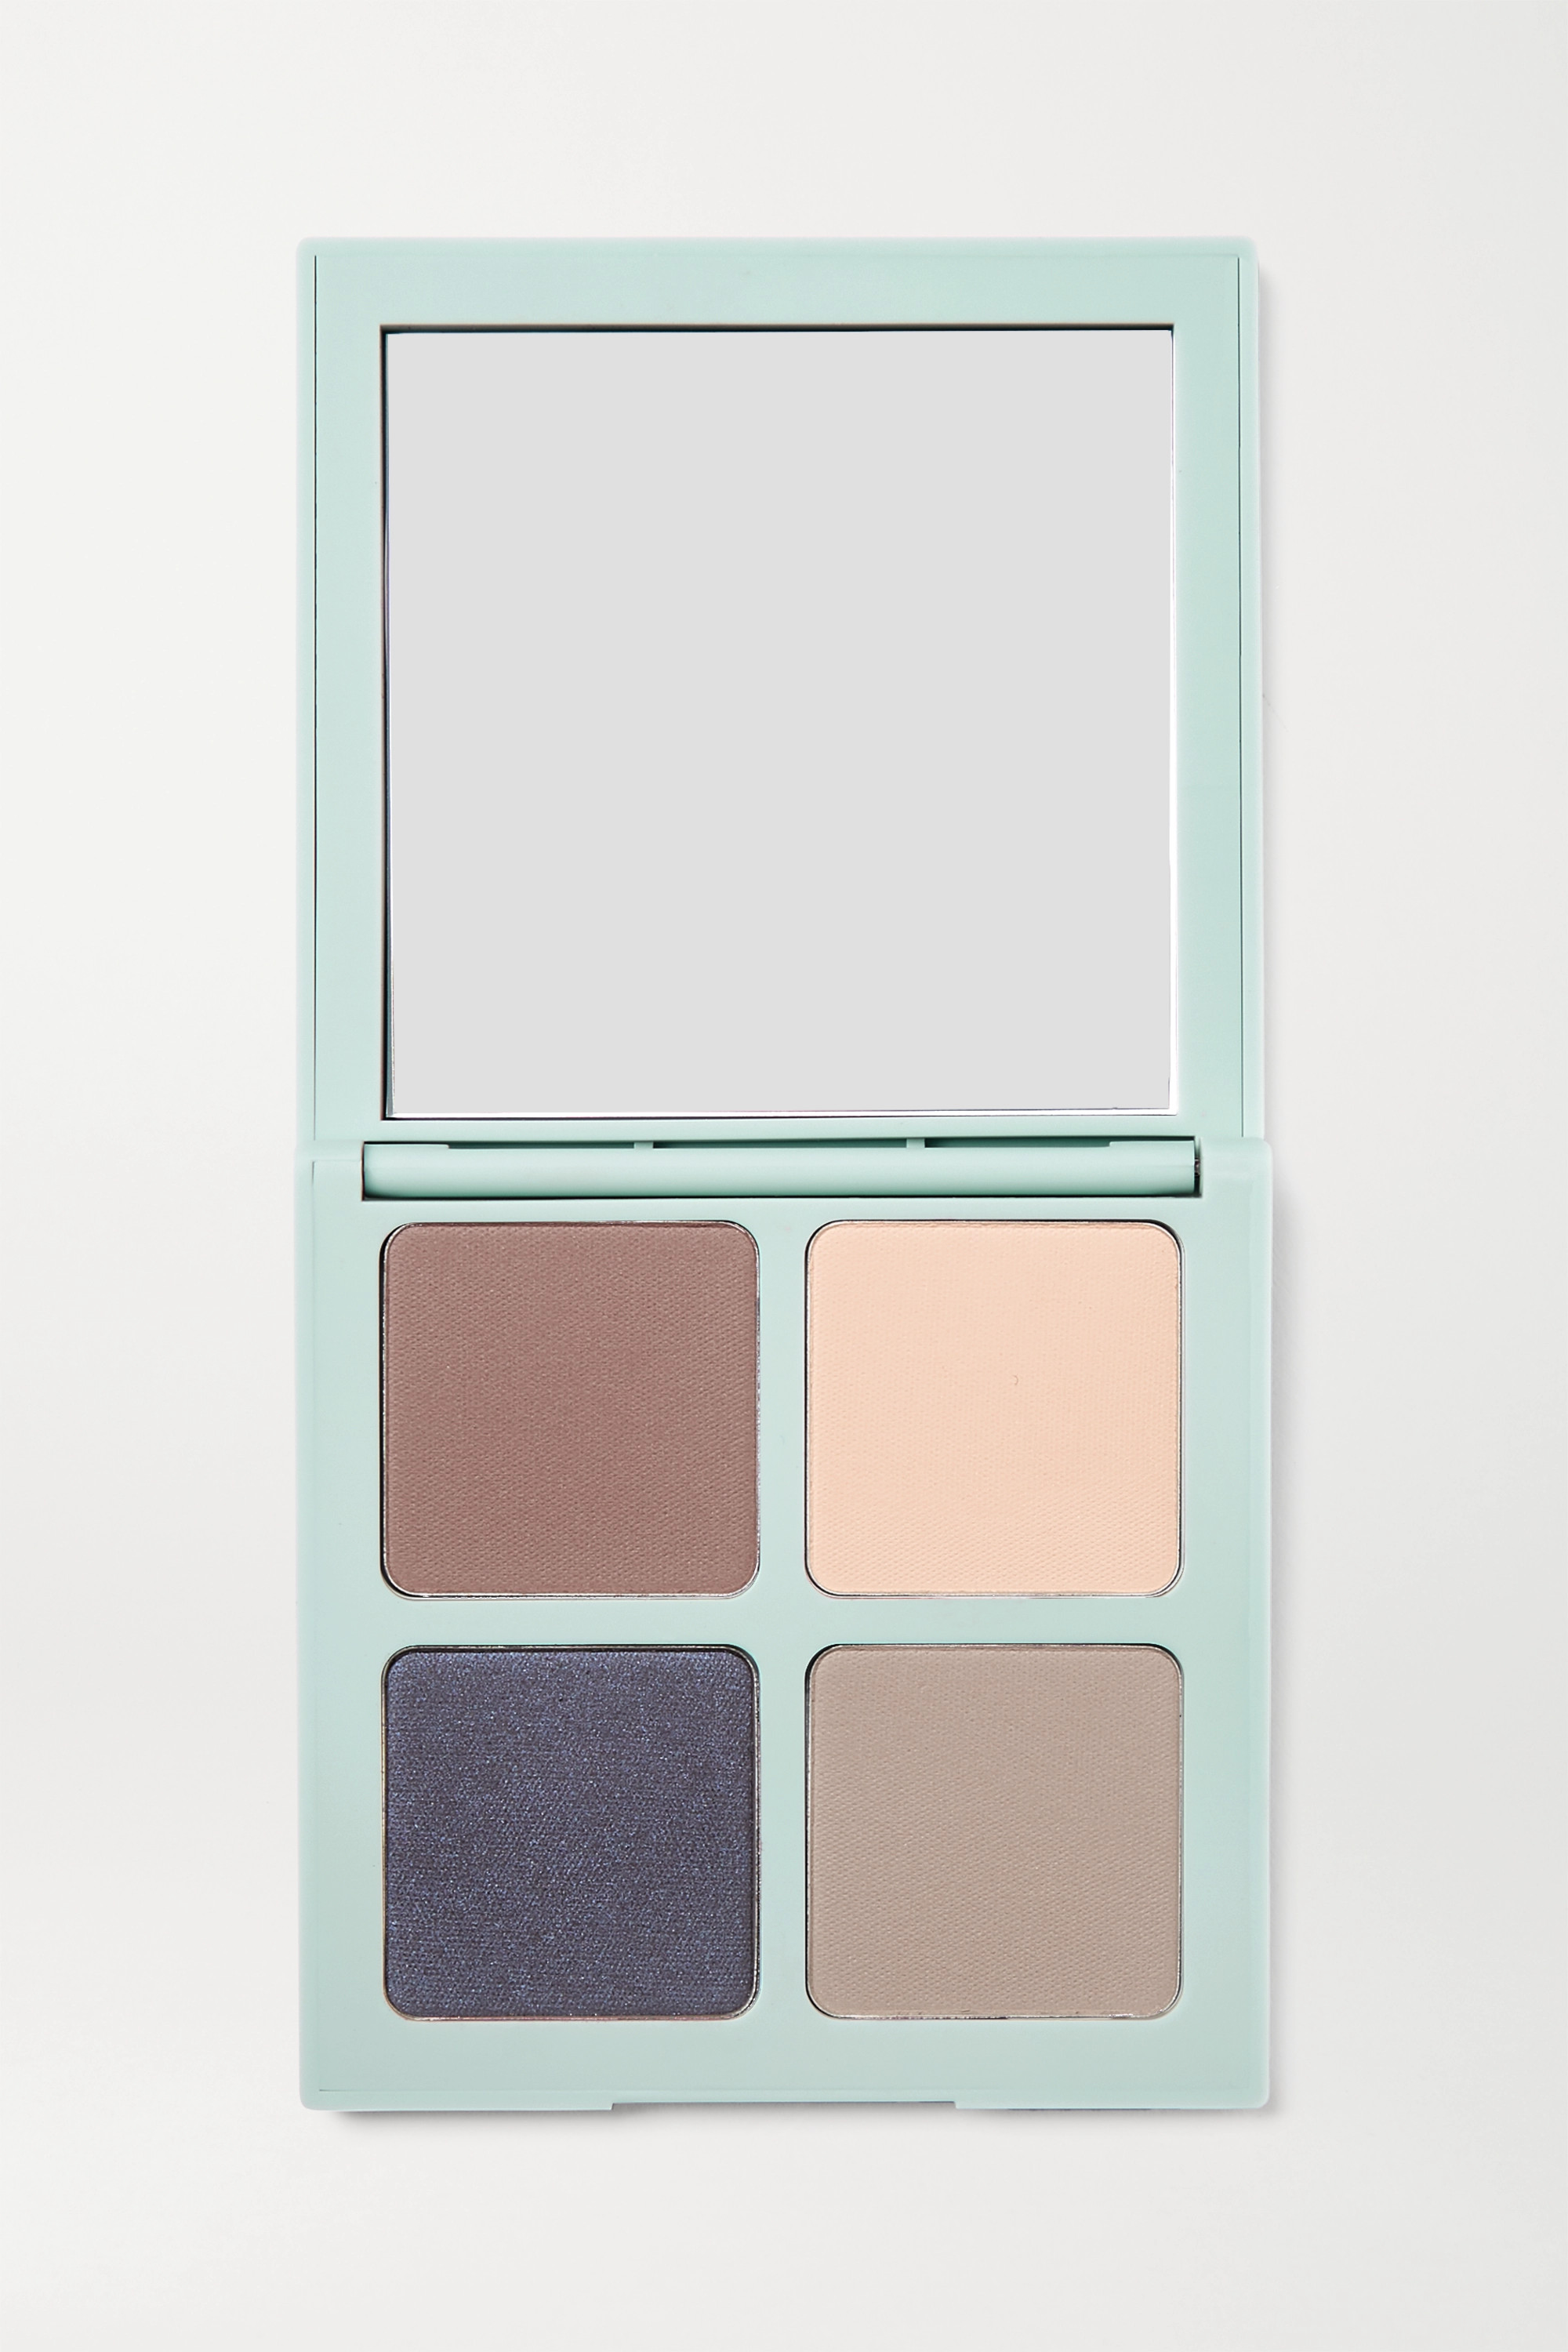 Vapour Beauty Eye Quads - Intention